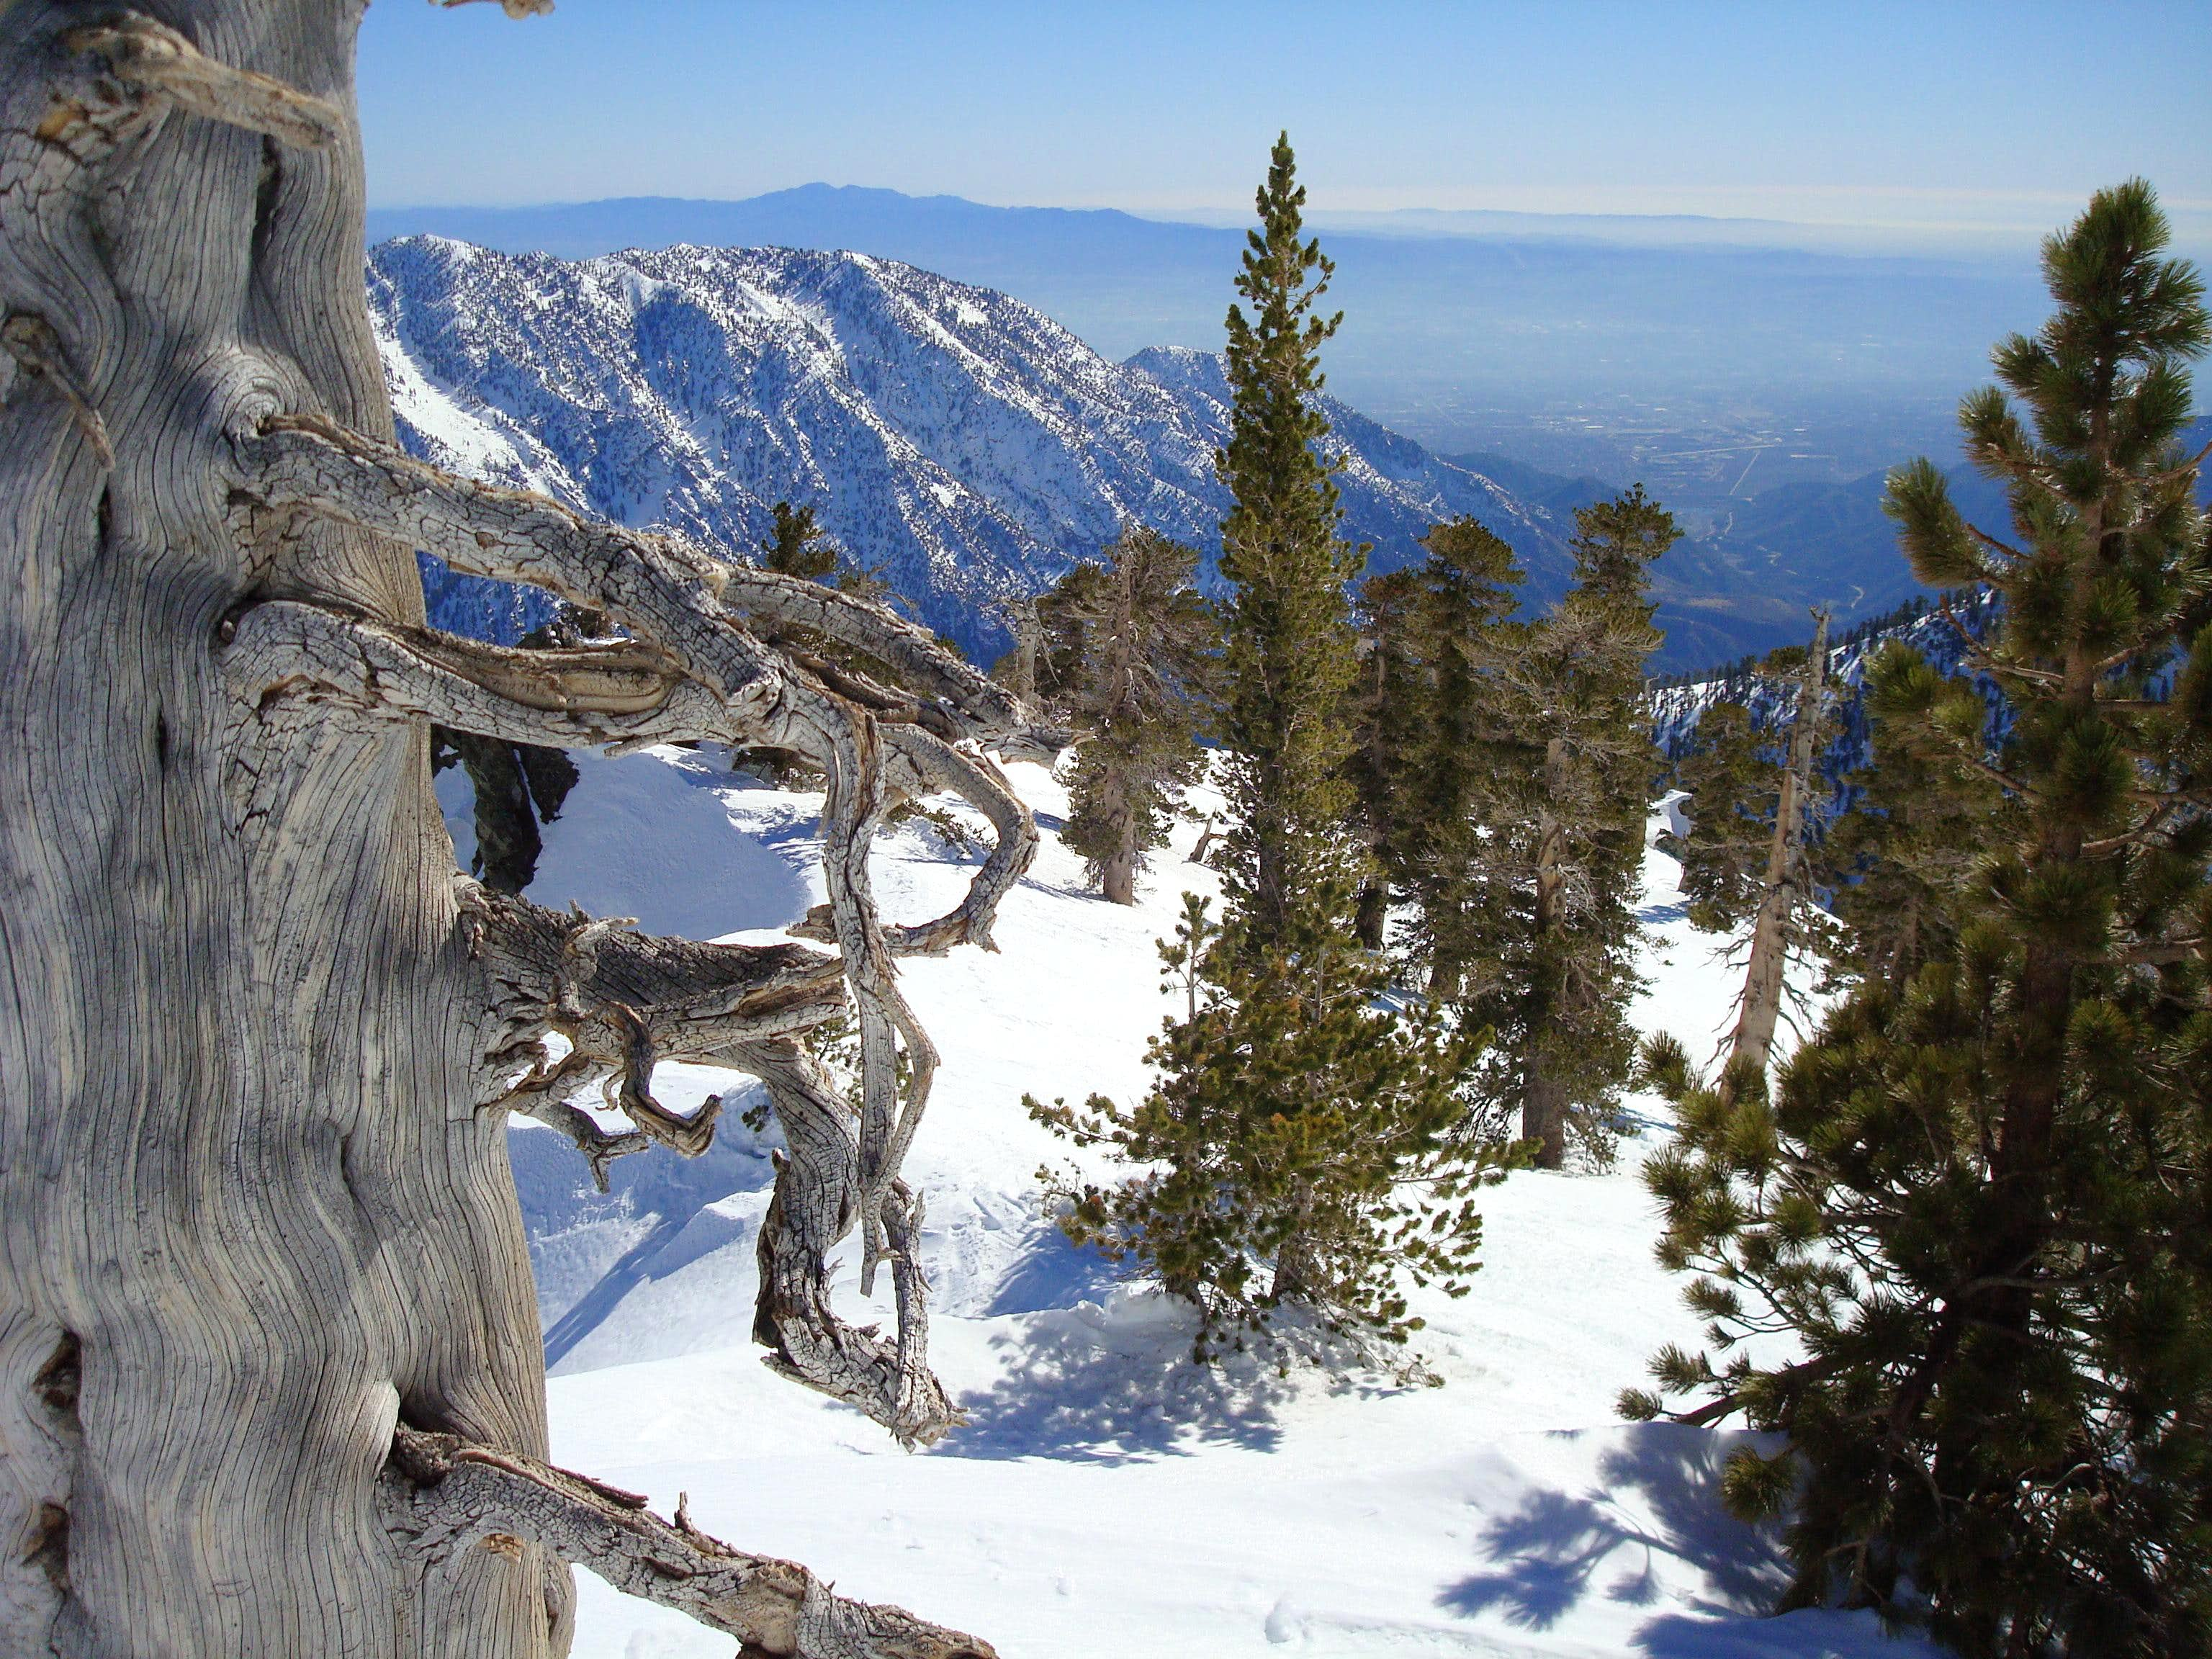 Mount Baldy, Feb. 9th 2008